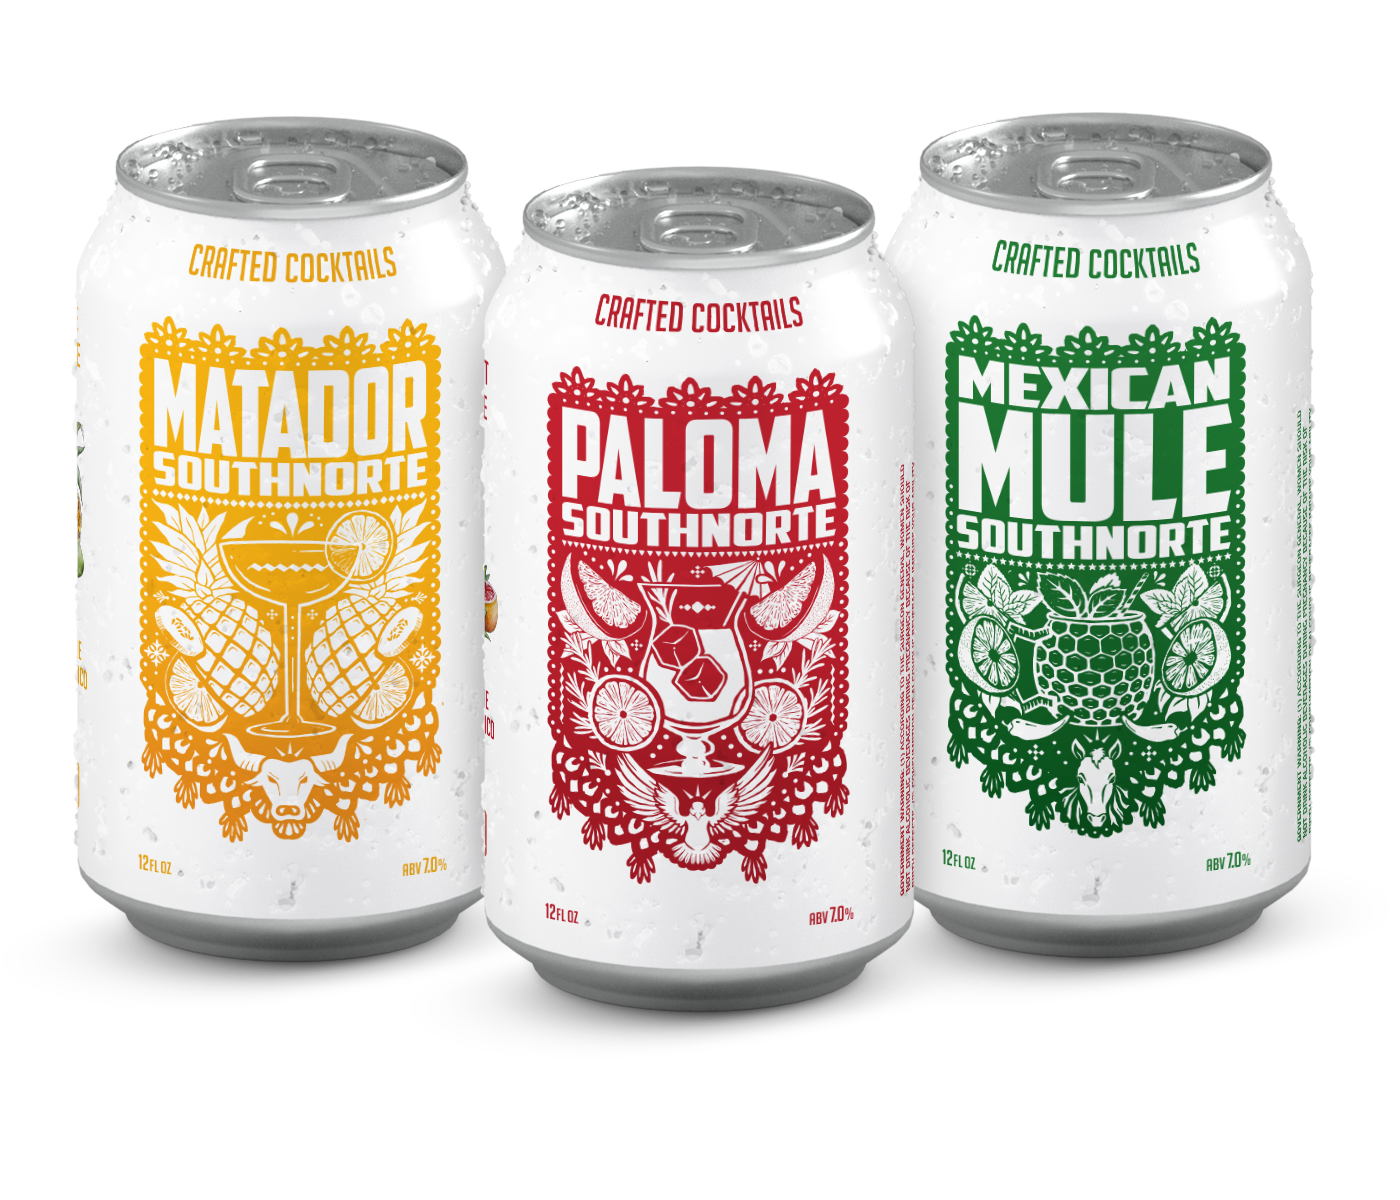 SouthNorte's three crafted cocktails: Matador, Paloma, Mexican Mule